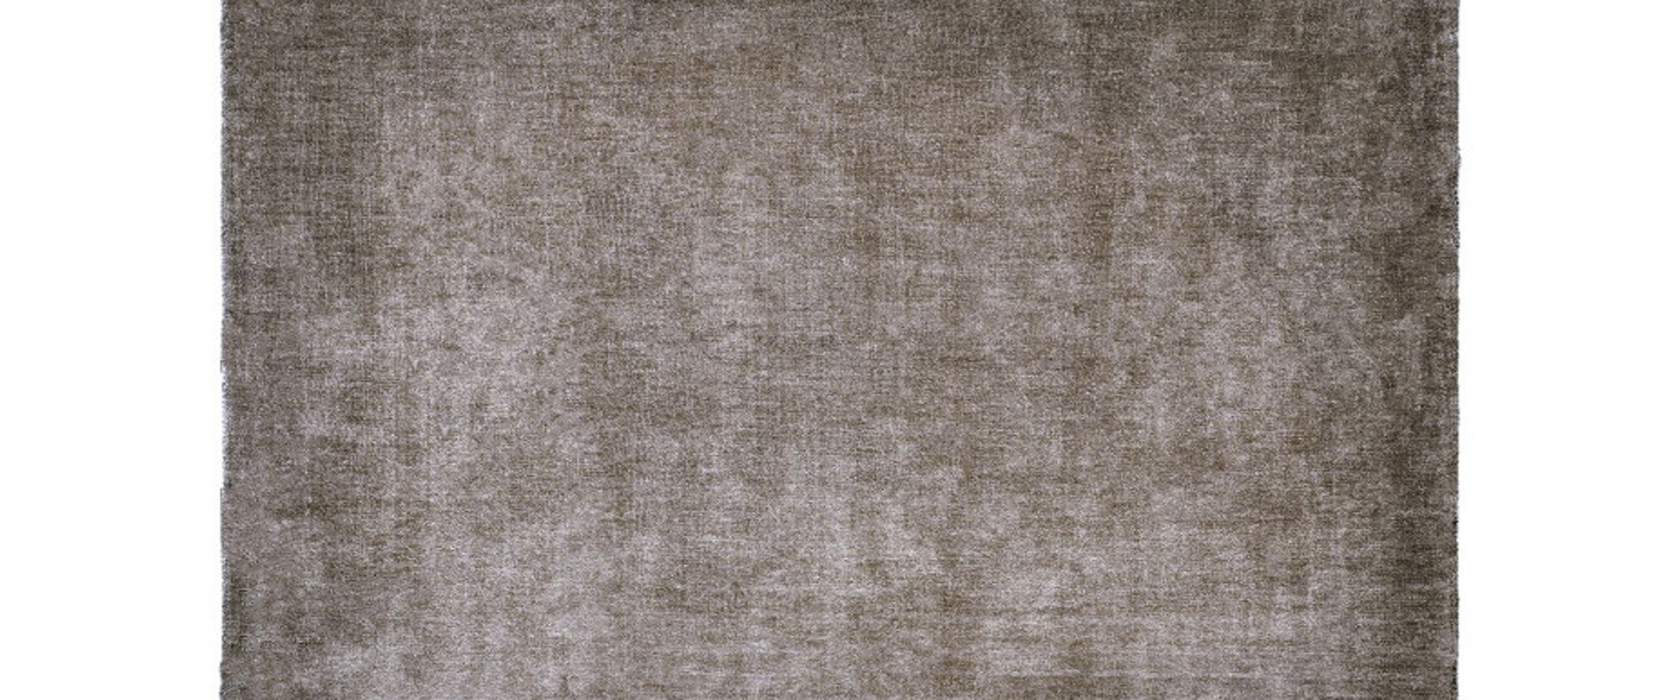 Килим My Breeze of Obsession 150 Taupe 160х230 см - Pufetto